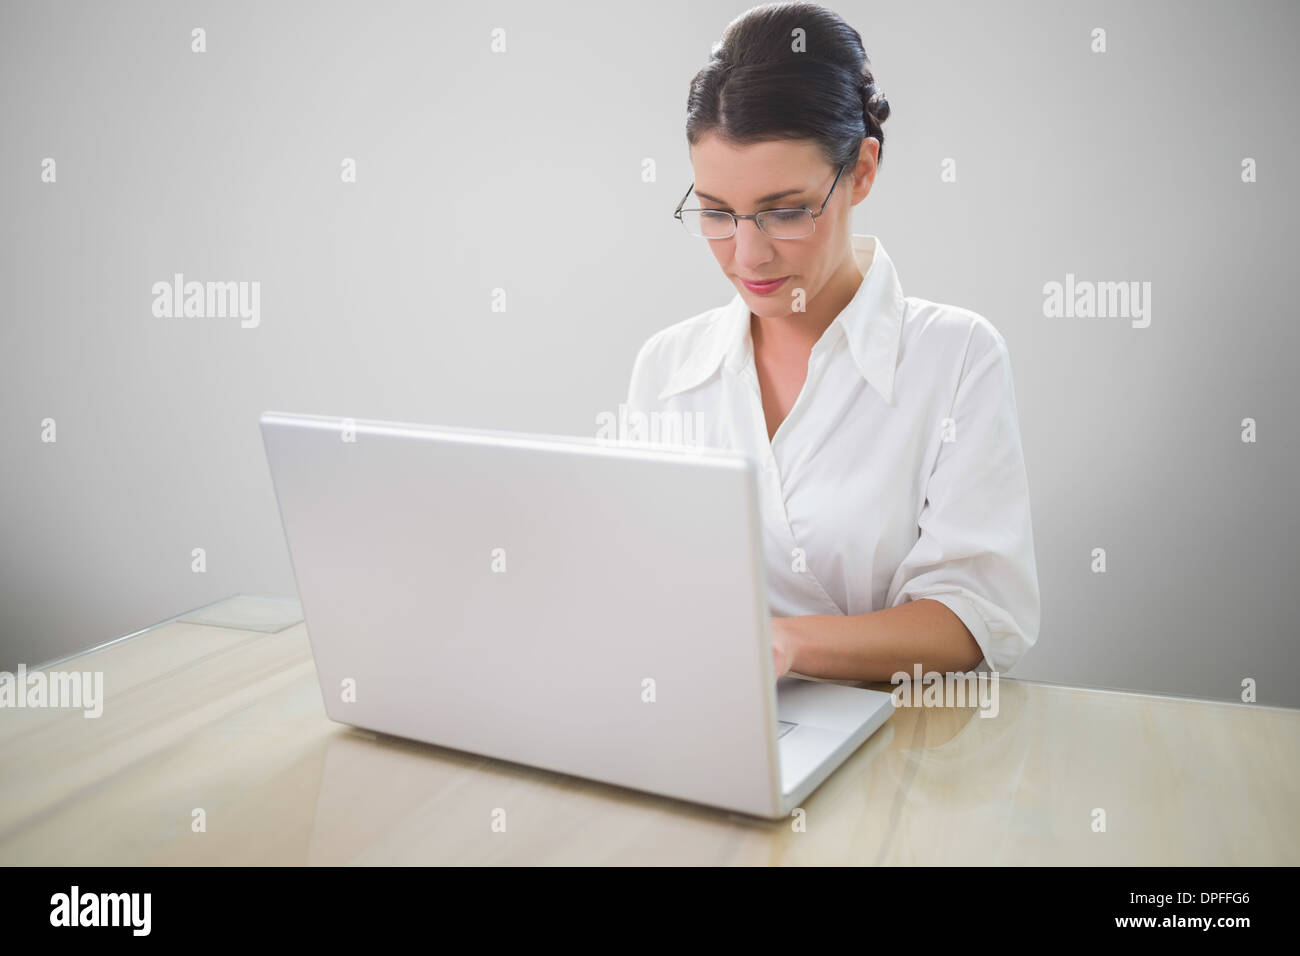 Focused businesswoman with classy glasses posing - Stock Image